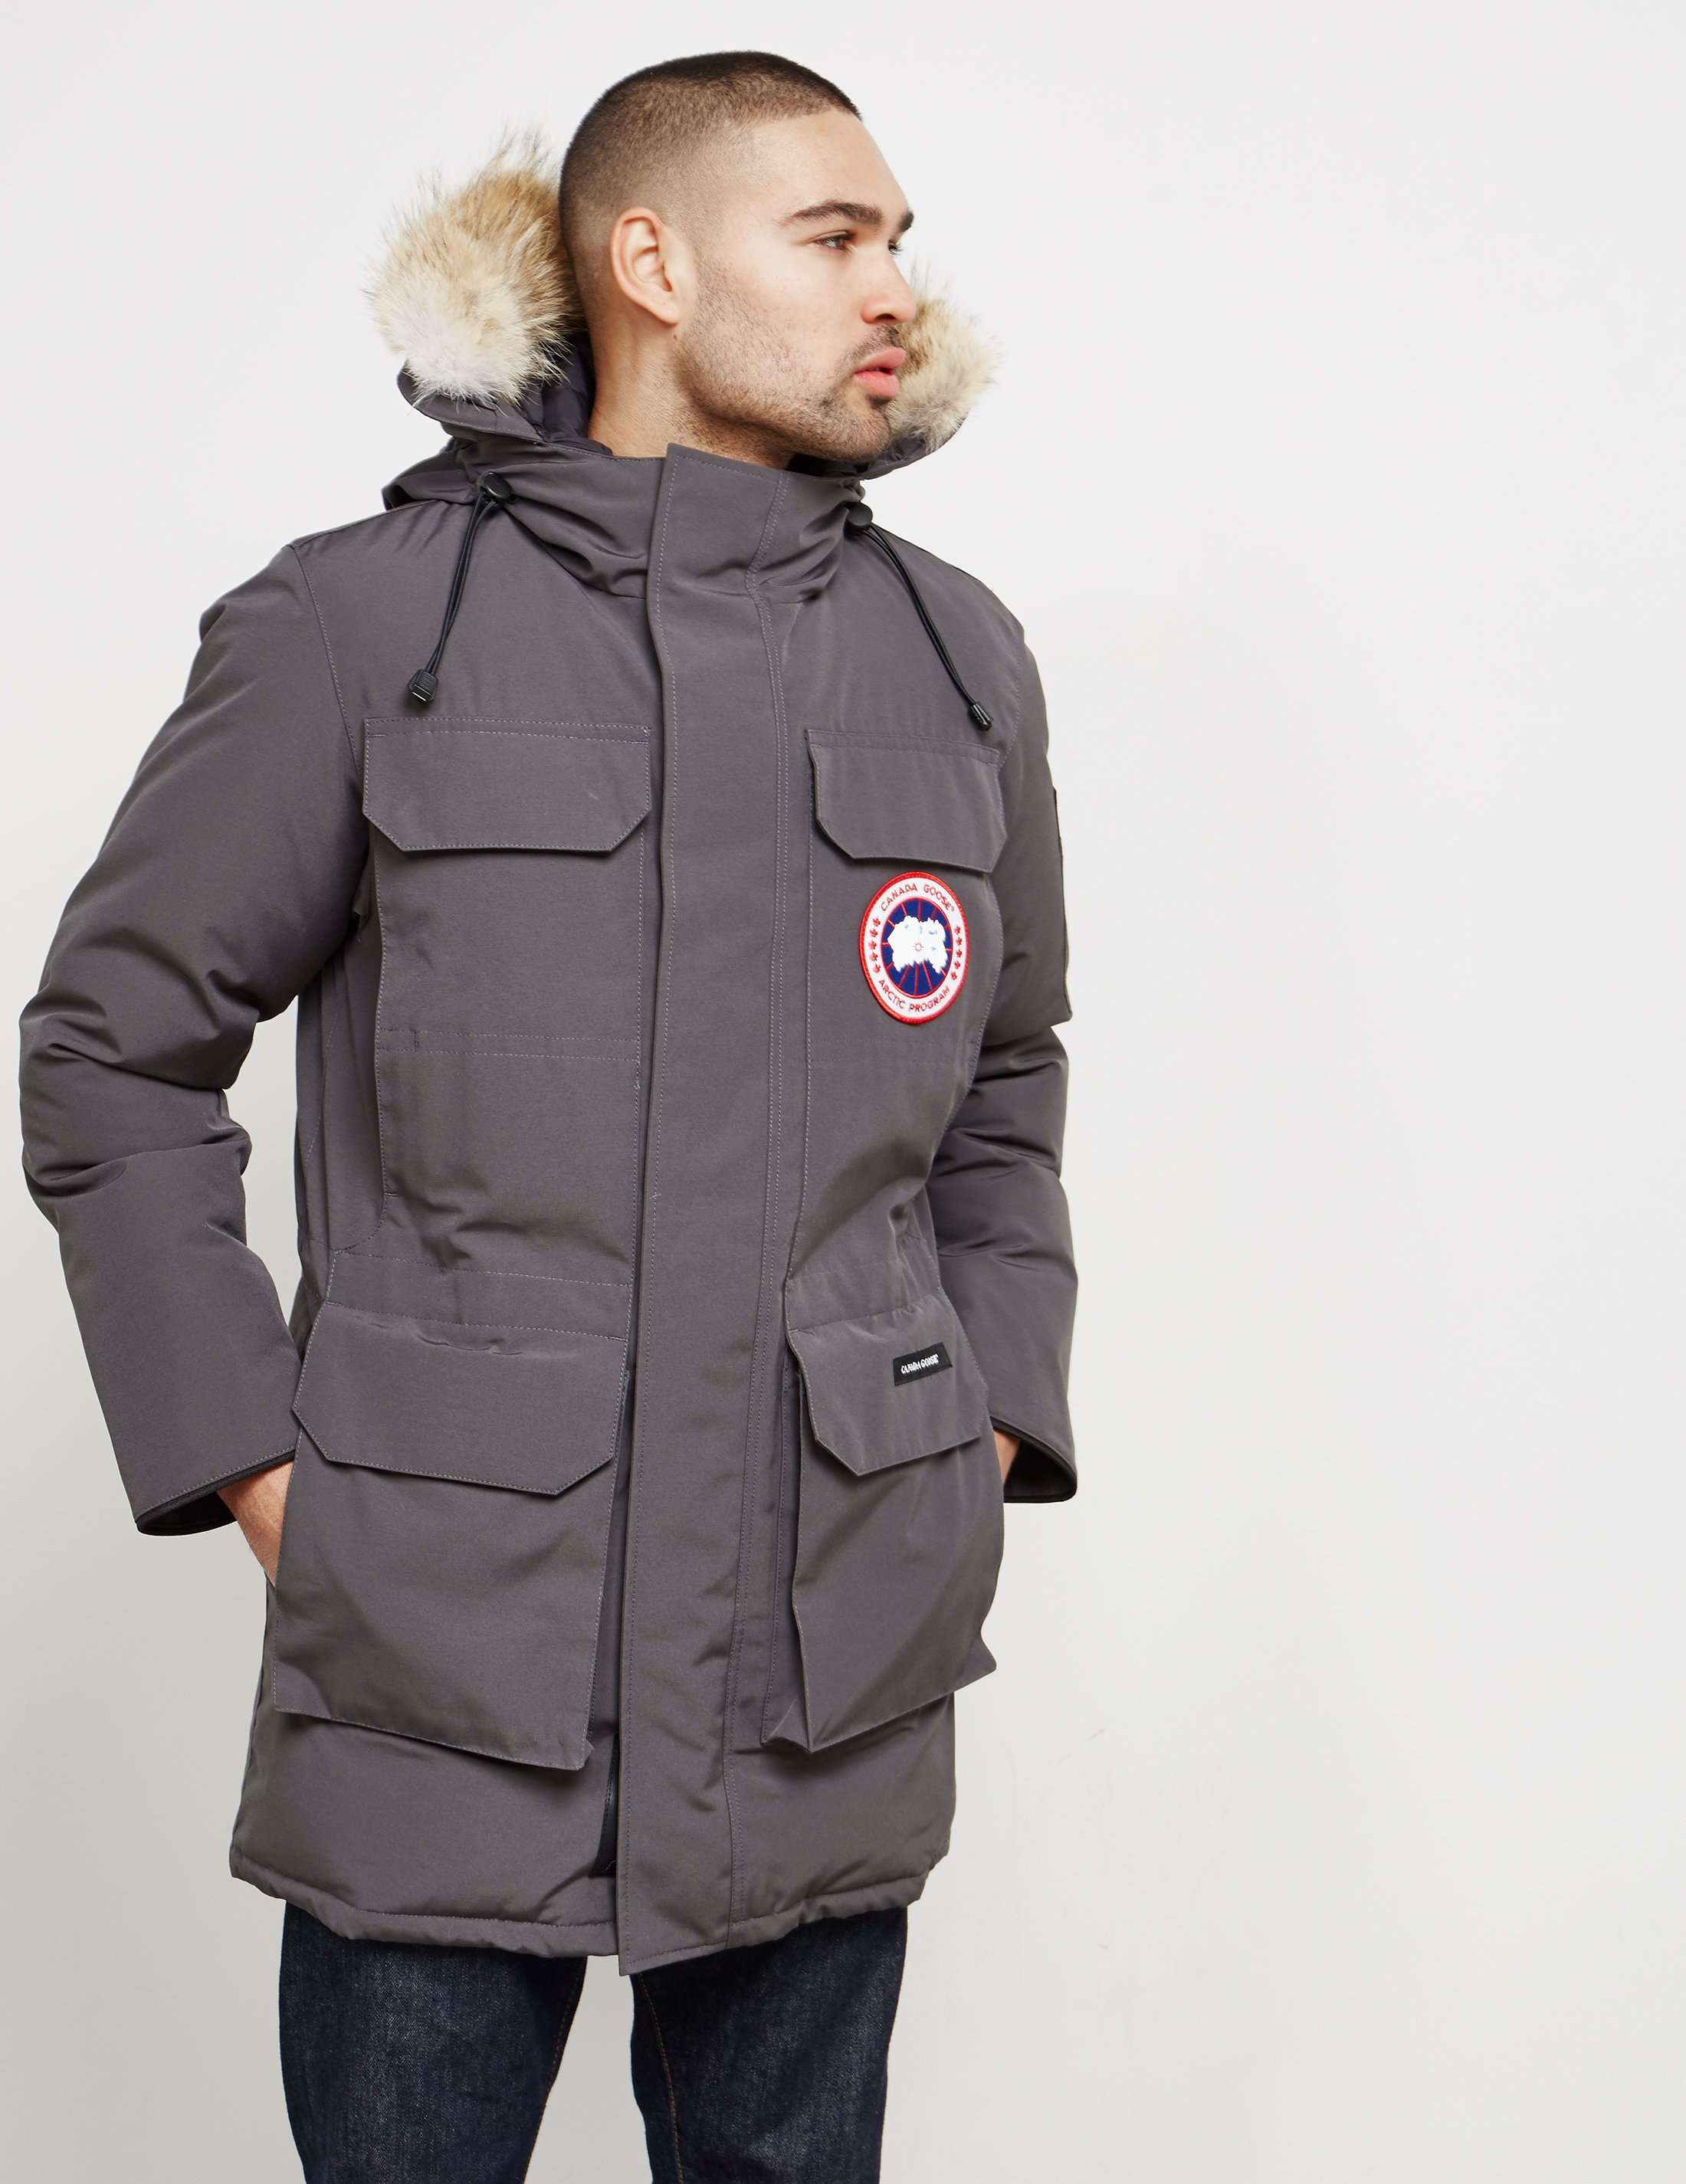 men's altier down triclimate® jacket CAD Wintertime treks are a blast with the customized coverage of this 3-in-1 jacket that combines a durable, waterproof outer shell with a removable, fill down insulated inner jacket.